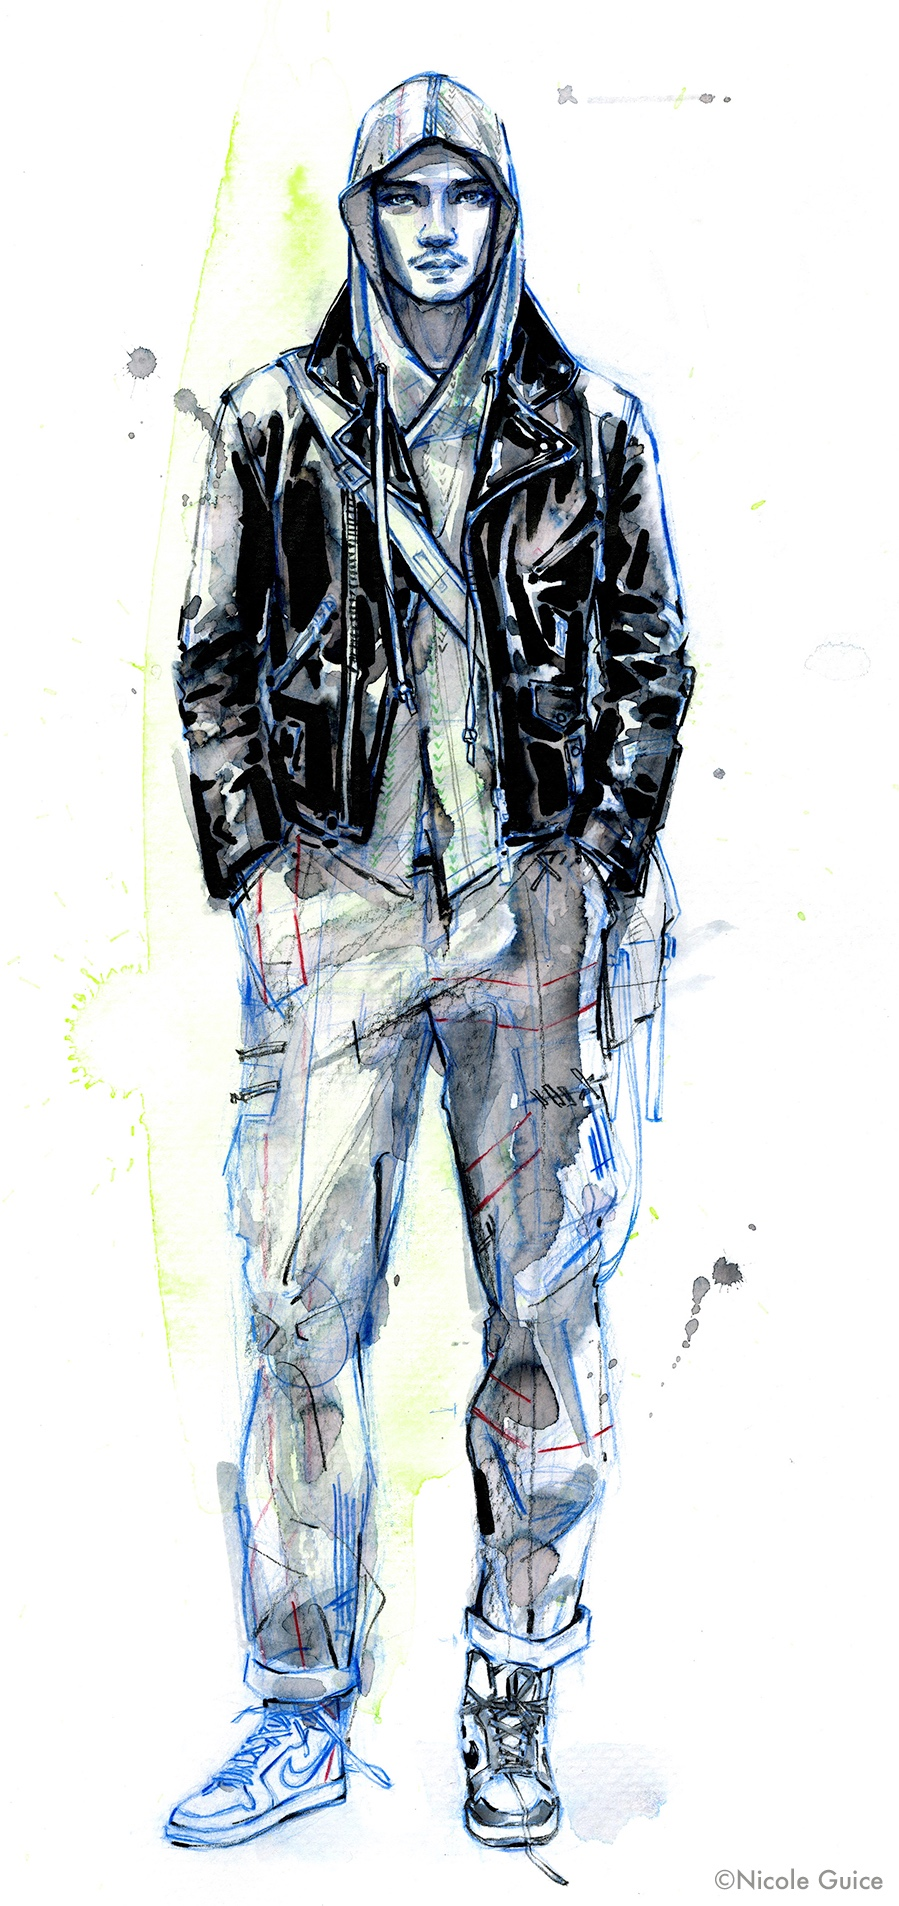 A+man_fashion+illustration_Nicole+Guice.jpg